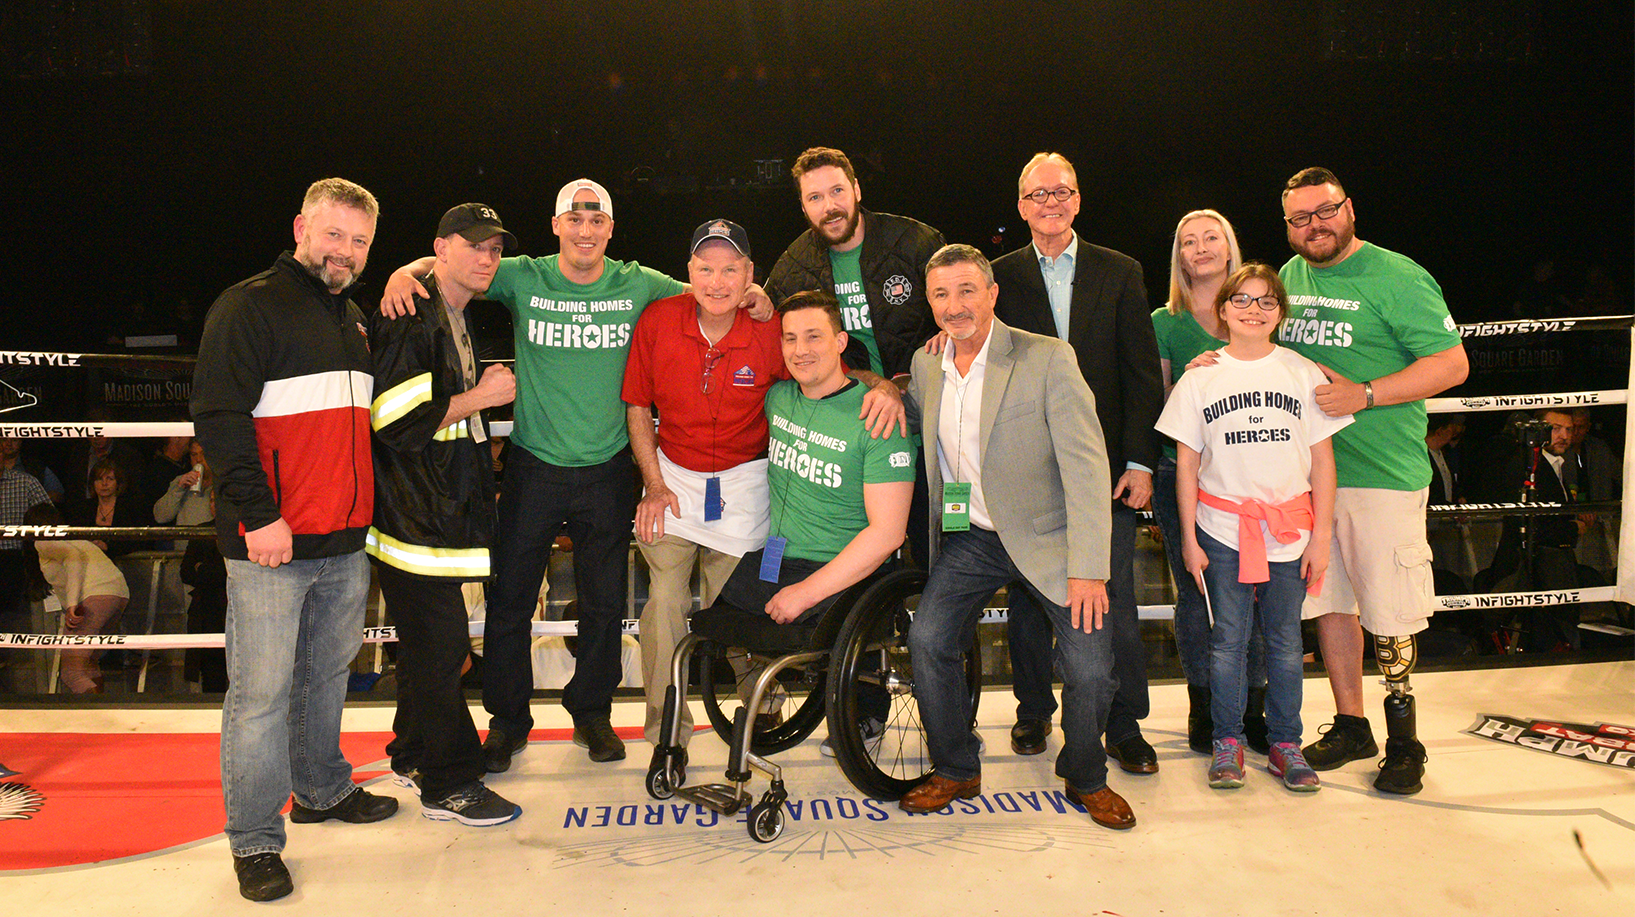 Fdny Boxing Building homes for heroes